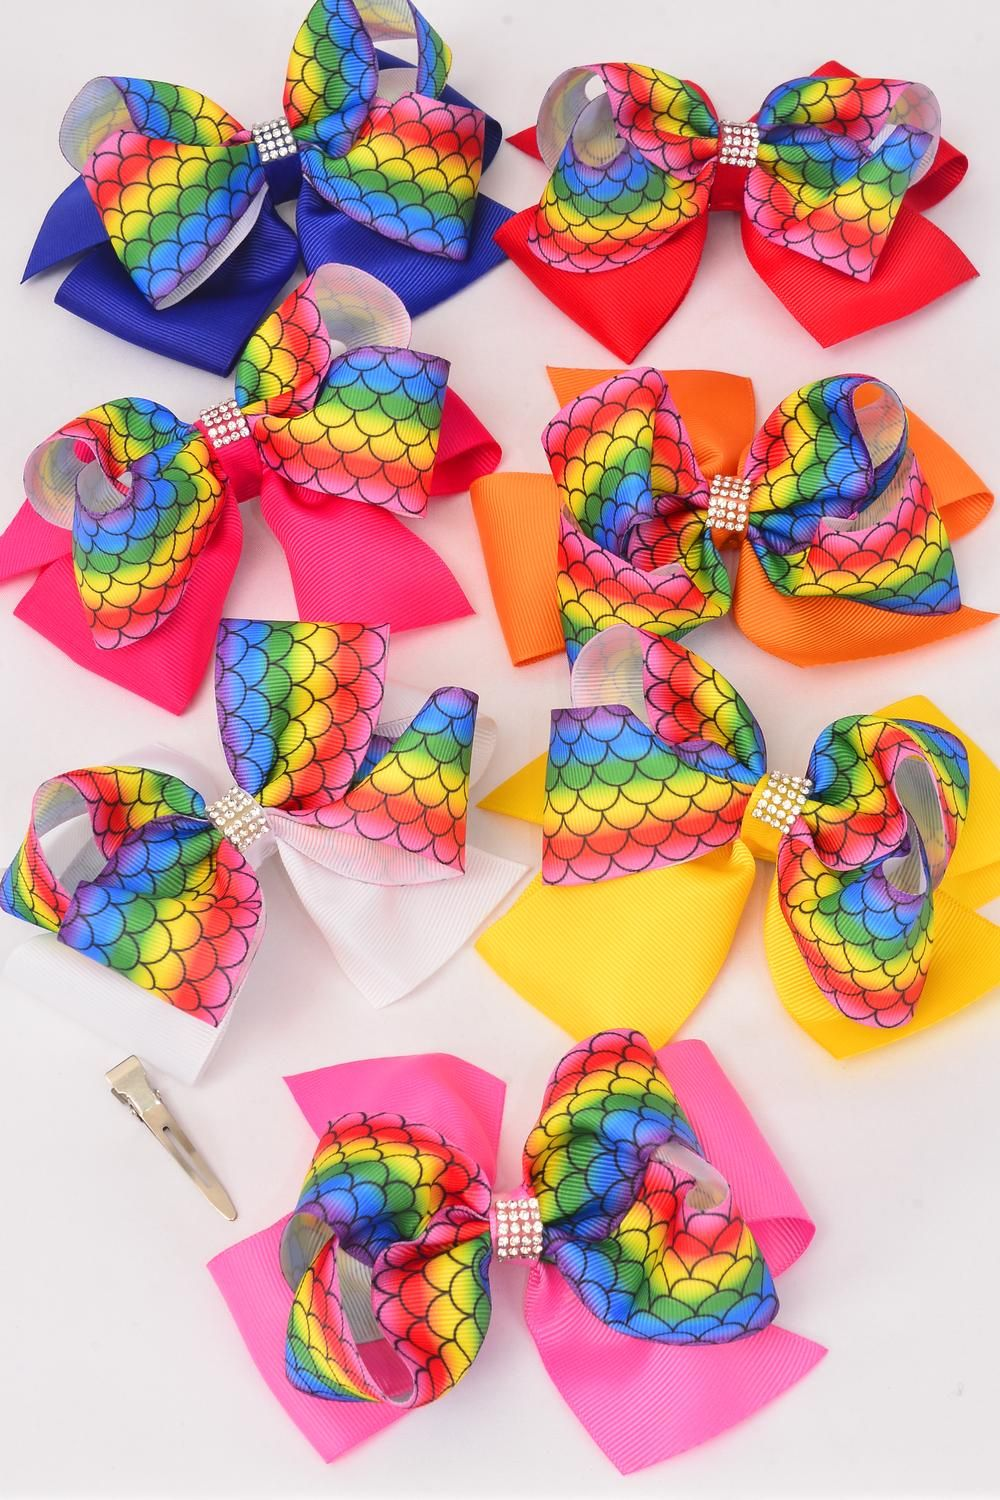 "Hair Bow Jumbo Double Layer Mermaid Scale Grosgrain Bow-tie/DZ **Multi** Size-6""x 5"" Wide,Alligator Clip,2 Hot Pink,2 Royal Blue,2 Yellow,2 Orange,2 White,1 Red,1 Fuchsia,7 Color mix,Clip Strip & UPC Code"